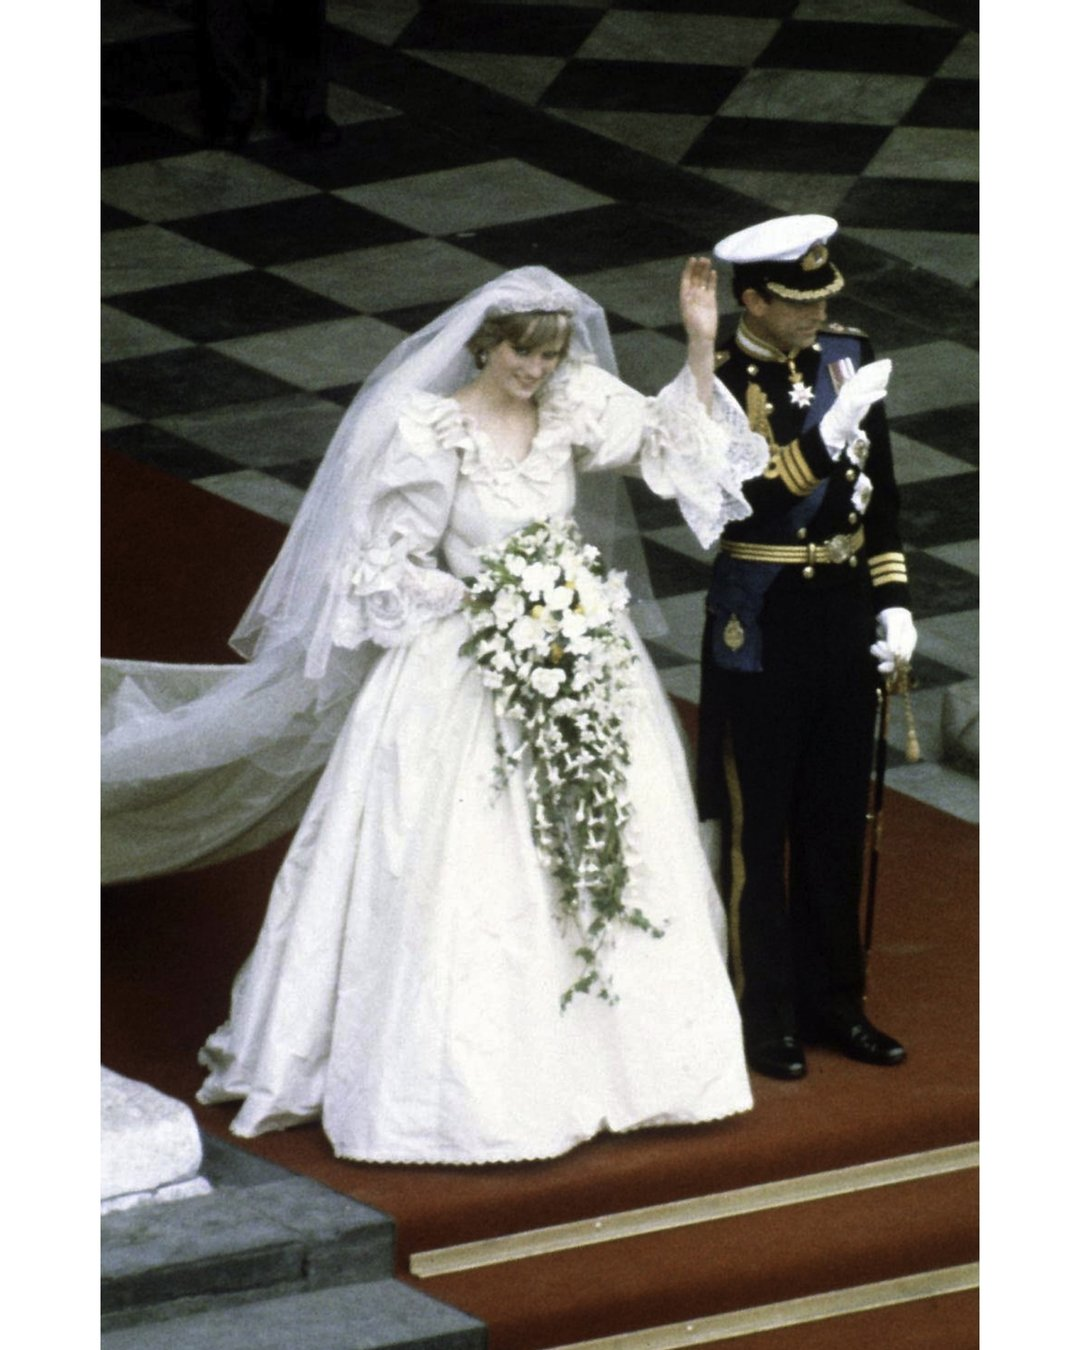 Diana And Charles Wedding.Prince Charles And Princess Diana At Their Wedding 11 X 14 Pop Culture Art Photographic Full Bleed Print Premium Paper 80 S Retro